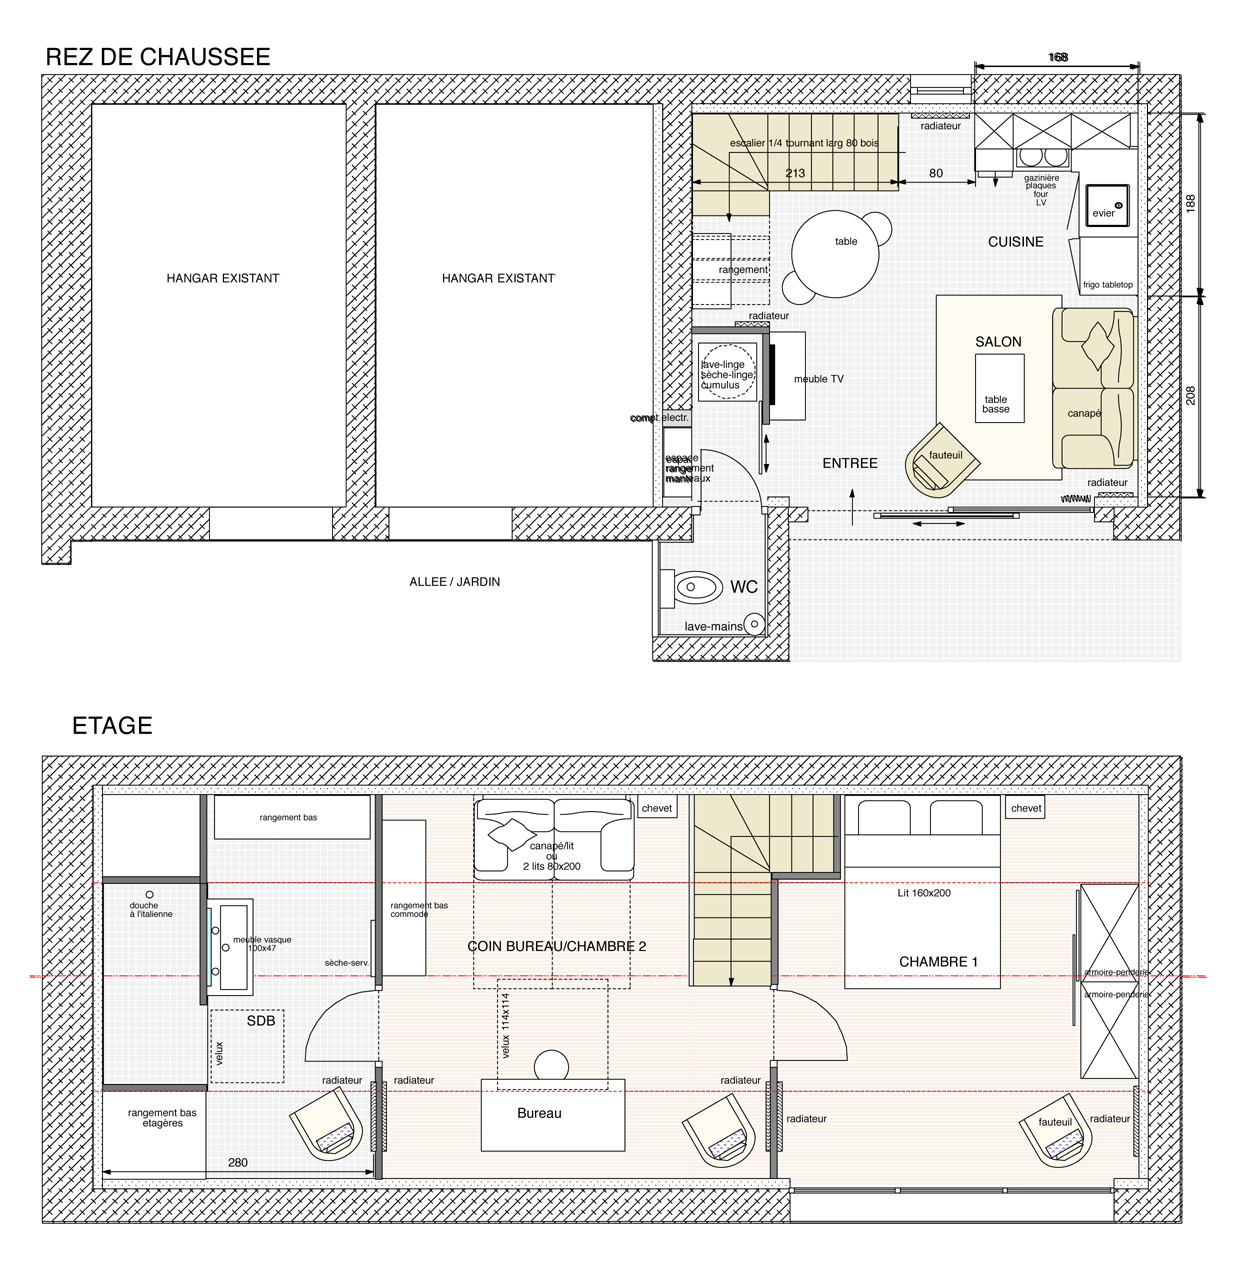 Plan amenagement maison meilleures images d 39 inspiration - Amenagement buanderie photos plans ...